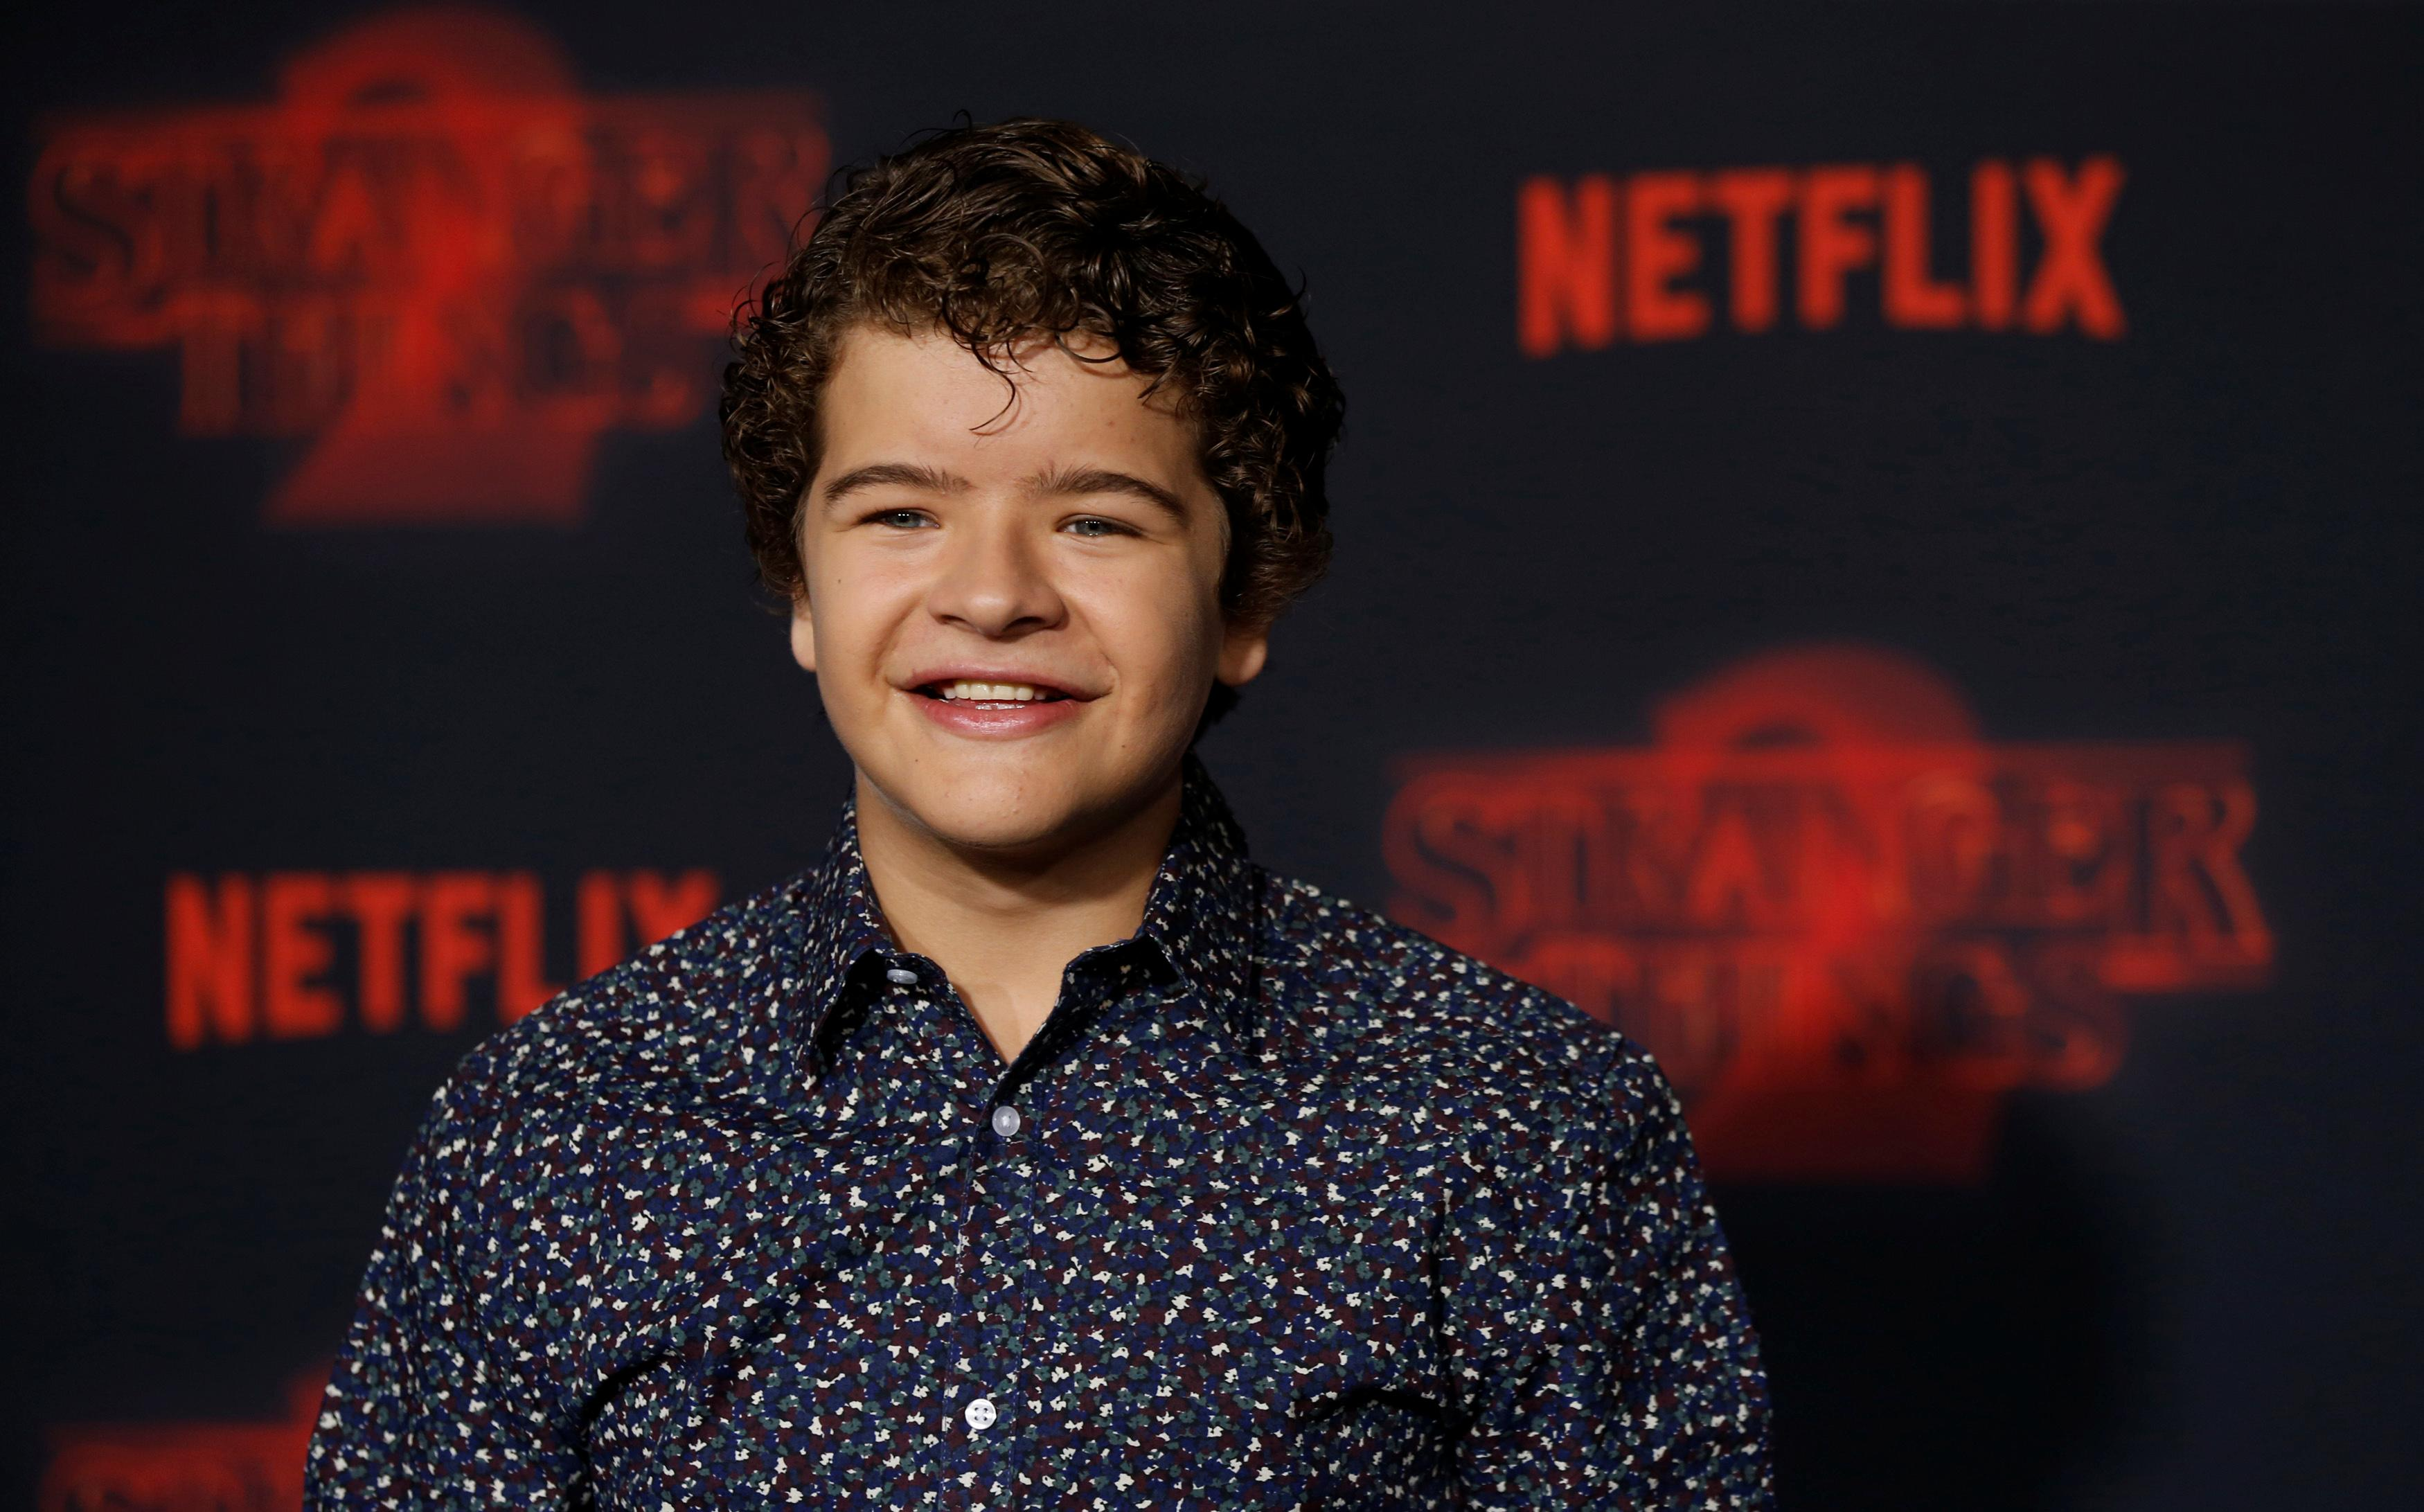 Netflix's 'Stranger Things' boosts public understanding of 1-in-a-million condition